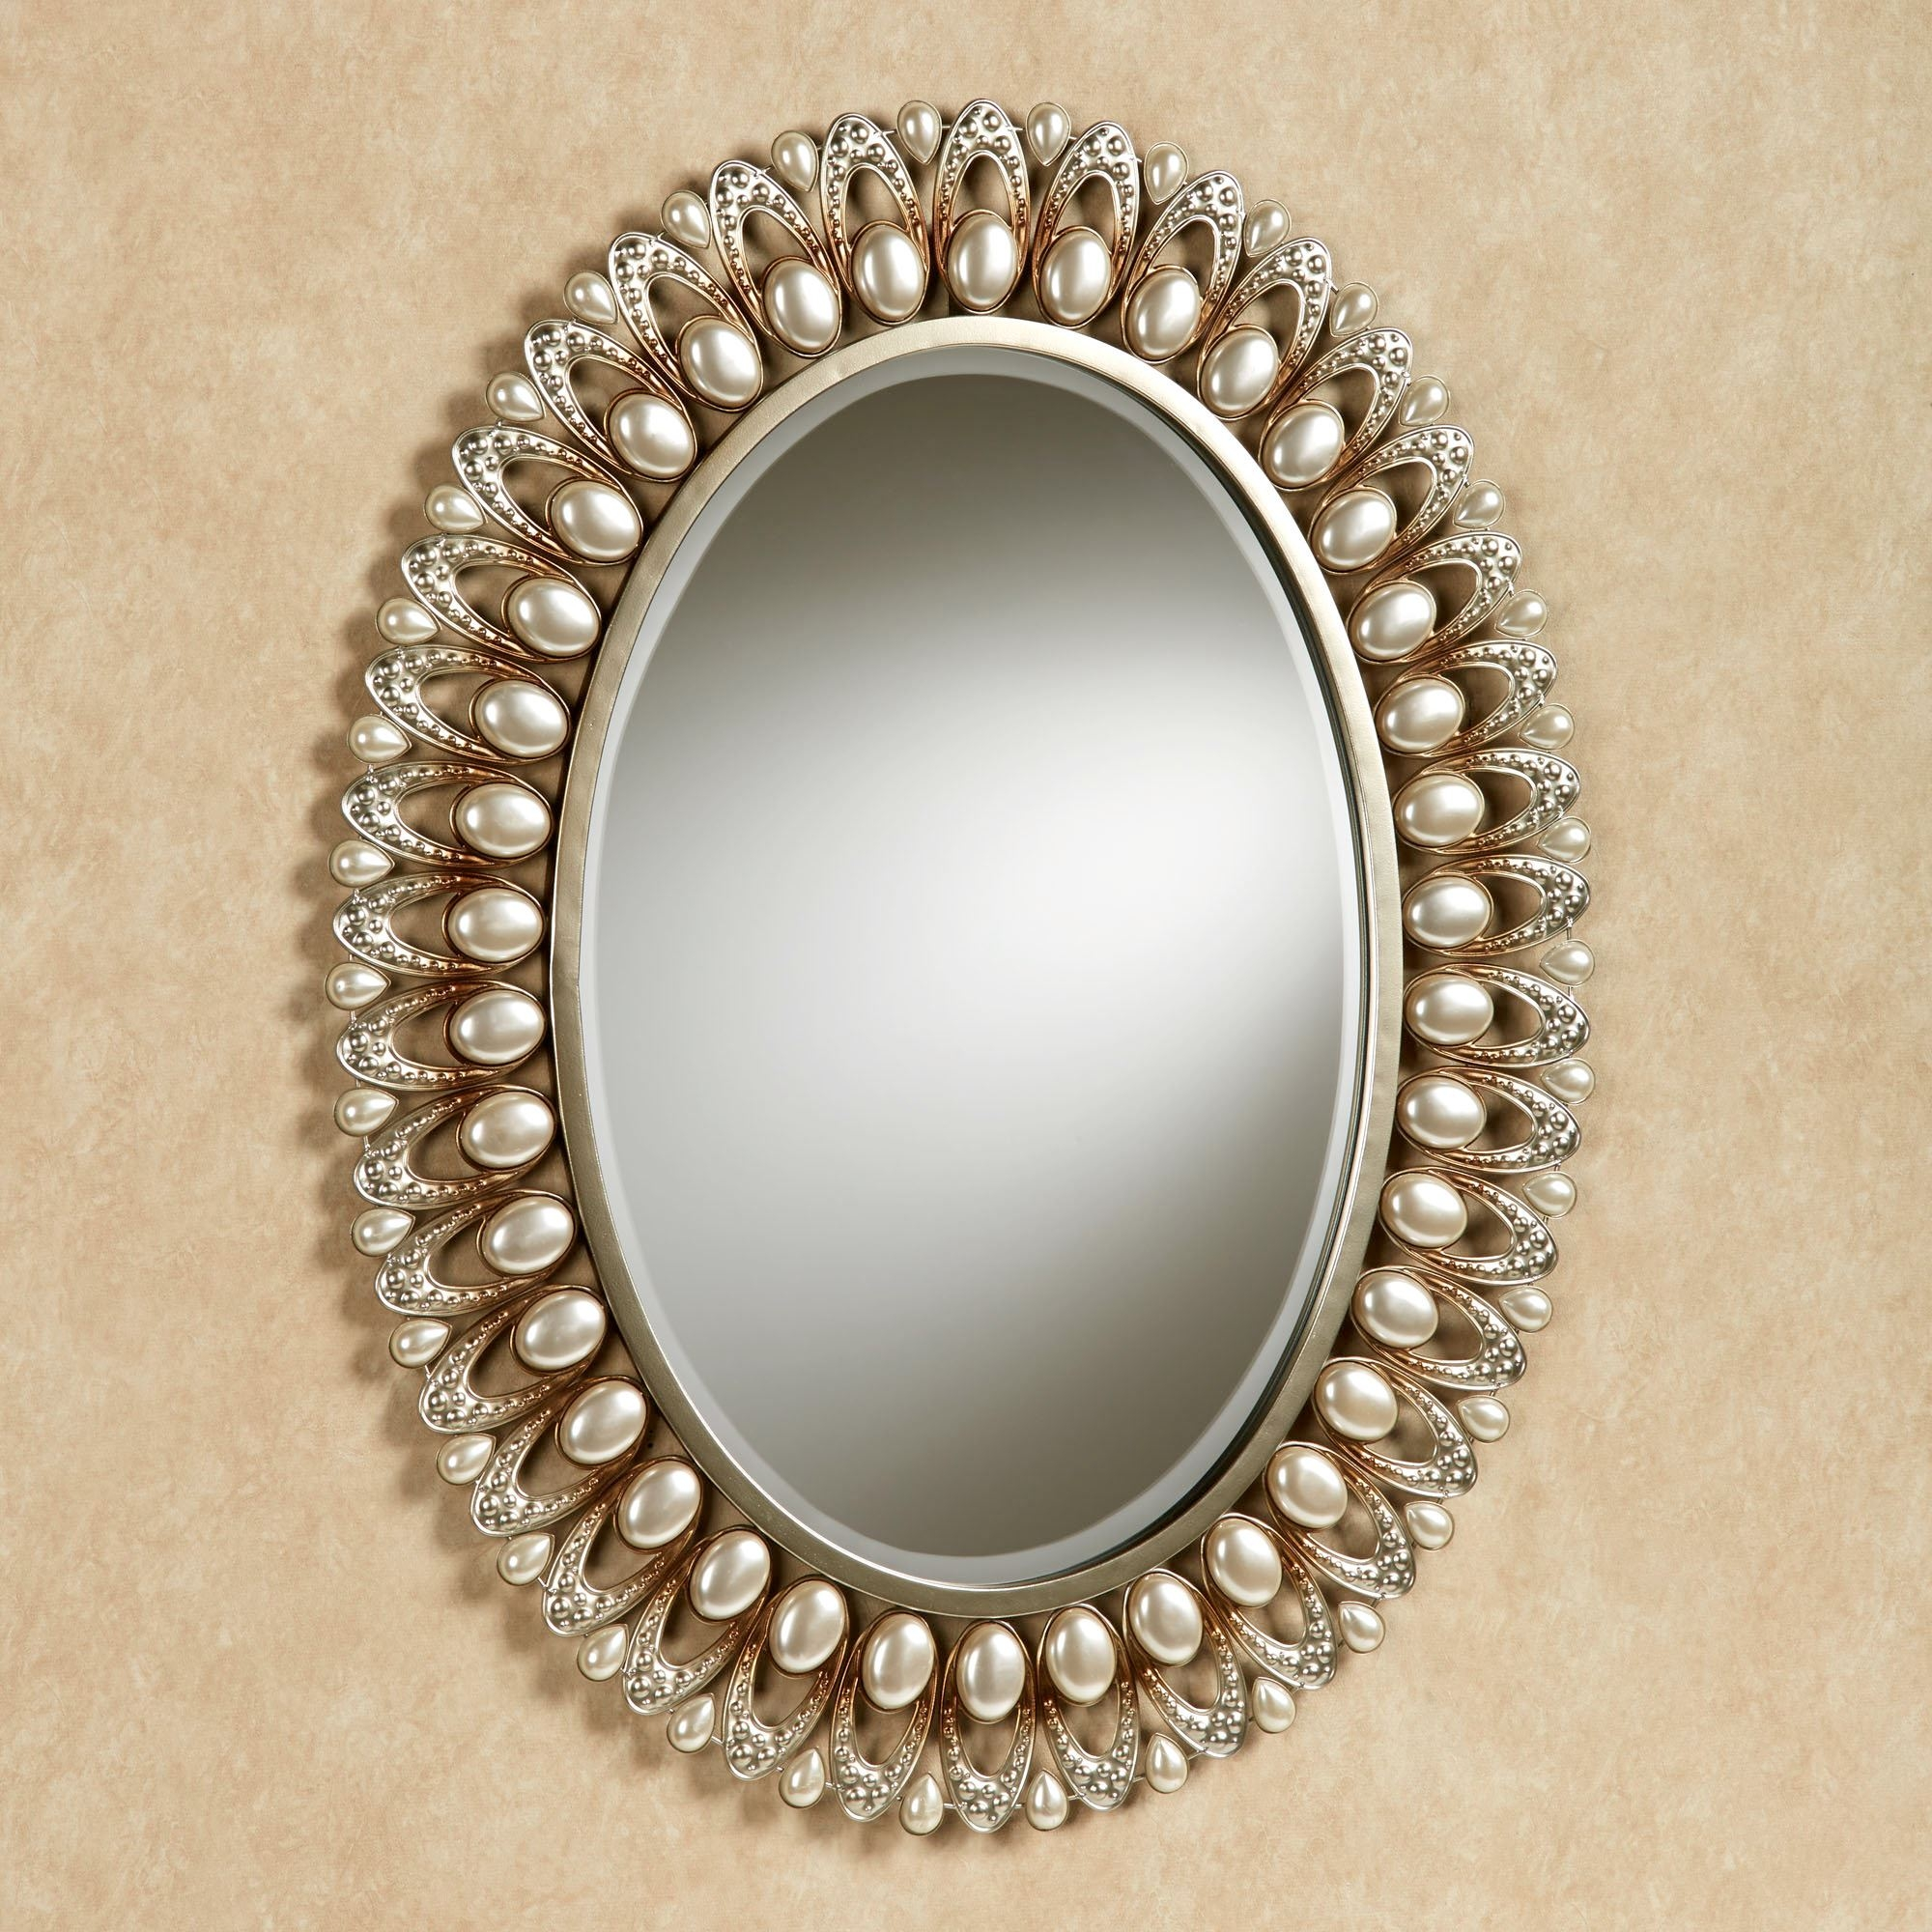 Julietta Pearl Oval Wall Mirror Intended For Oval Wall Mirrors (Image 7 of 15)